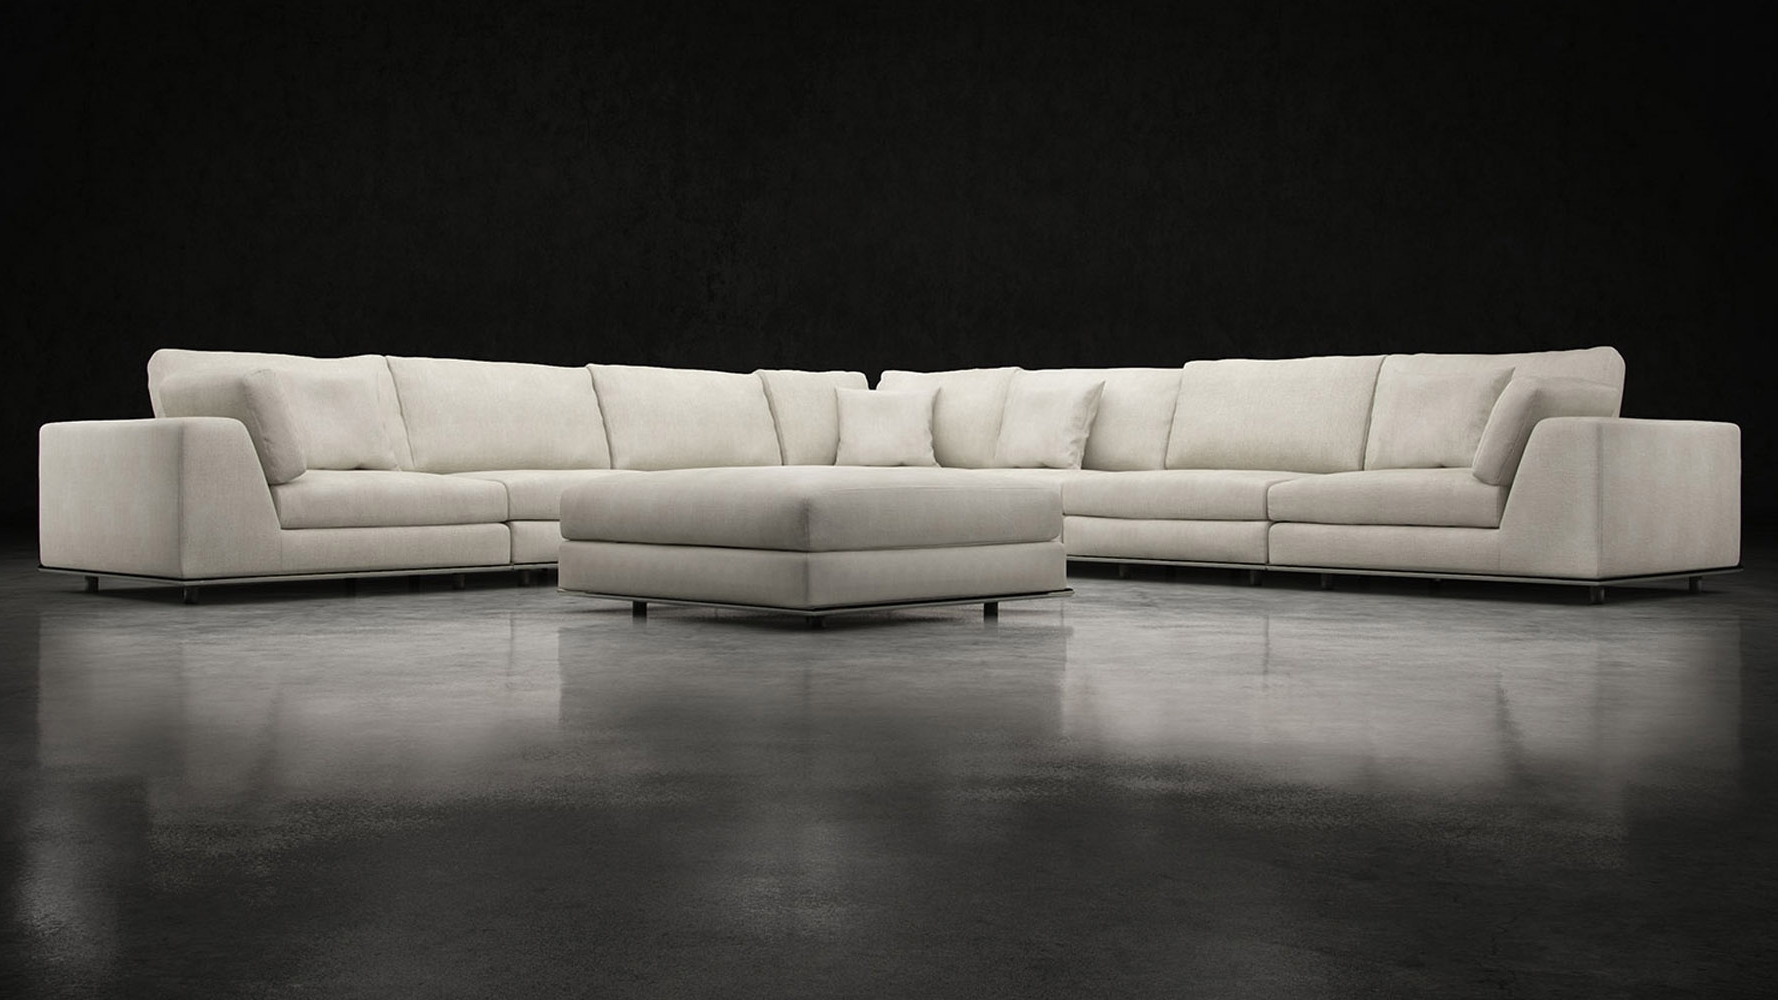 Joining Hardware Sectional Sofas For Well Liked Furniture : 5060 Recliner Sectional Sofa Costco $699 Corner Couch (View 8 of 15)